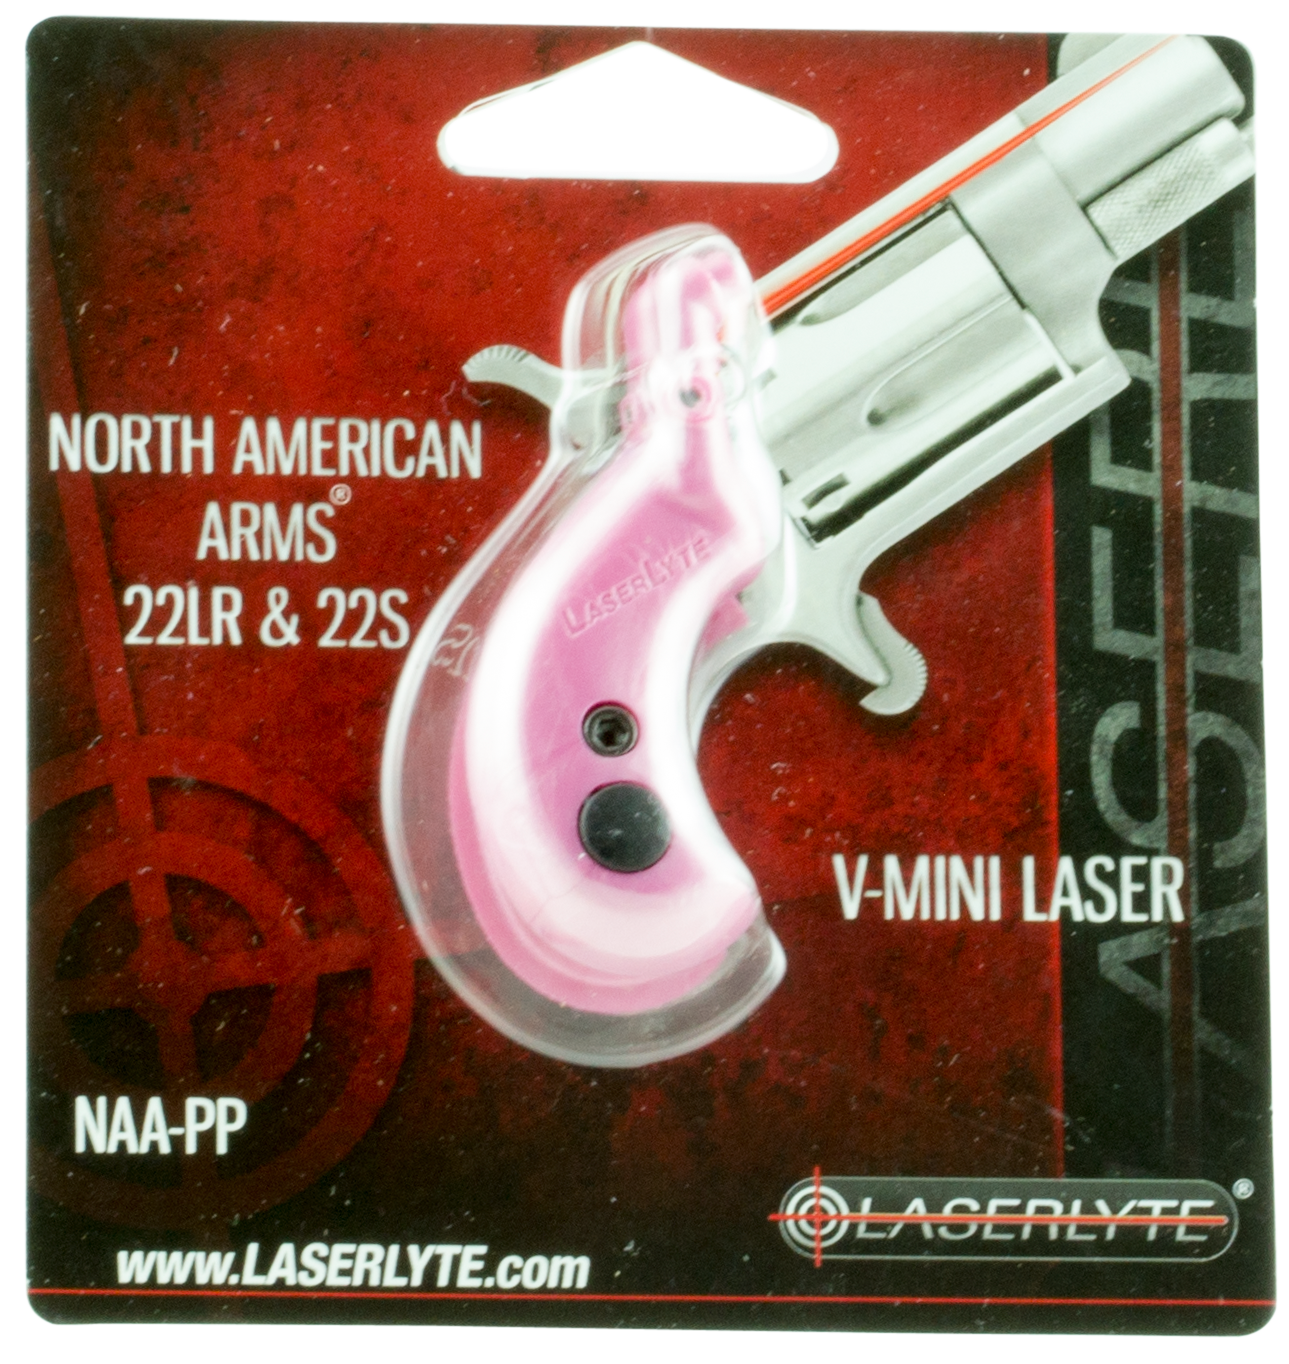 LASERLYTE(P&L INDUSTRIES)